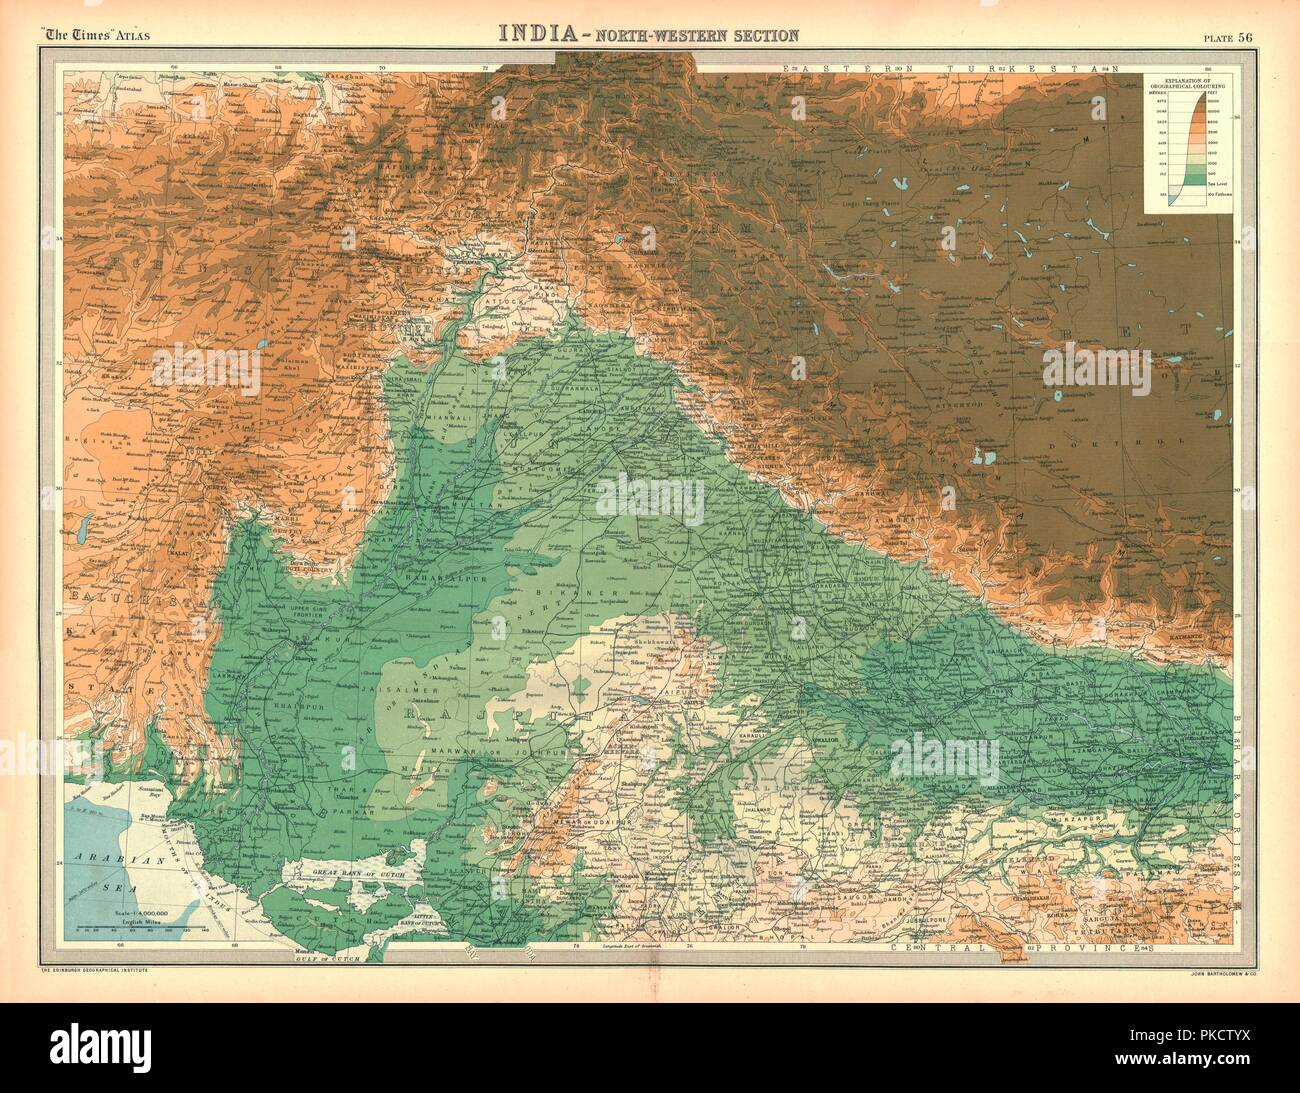 Map of India - North Western Section. Map showing Afghanistan and ...